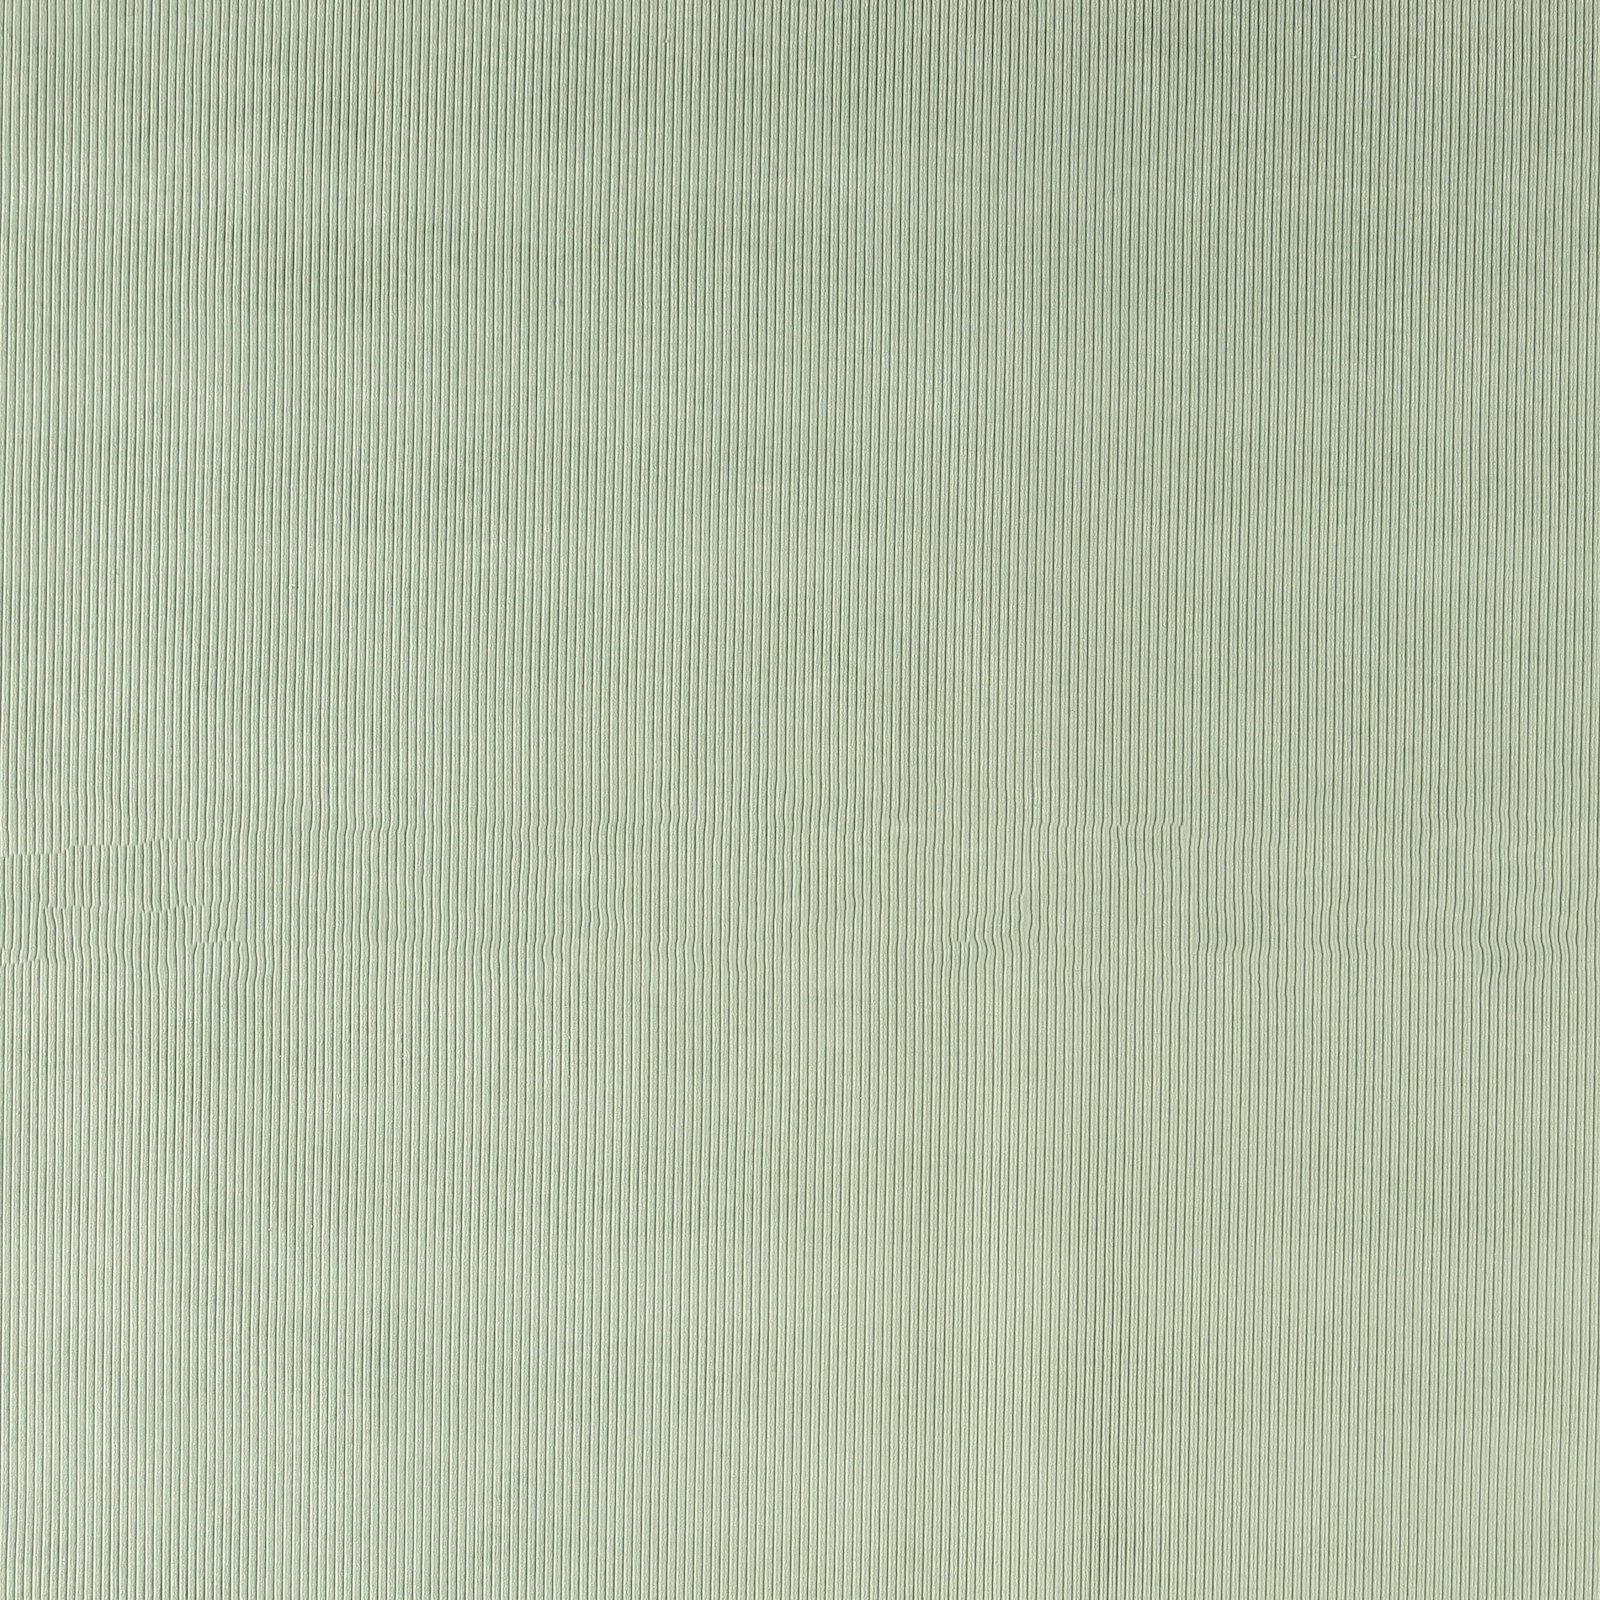 Upholstery corduroy 6 wales light sage 824035_pack_sp